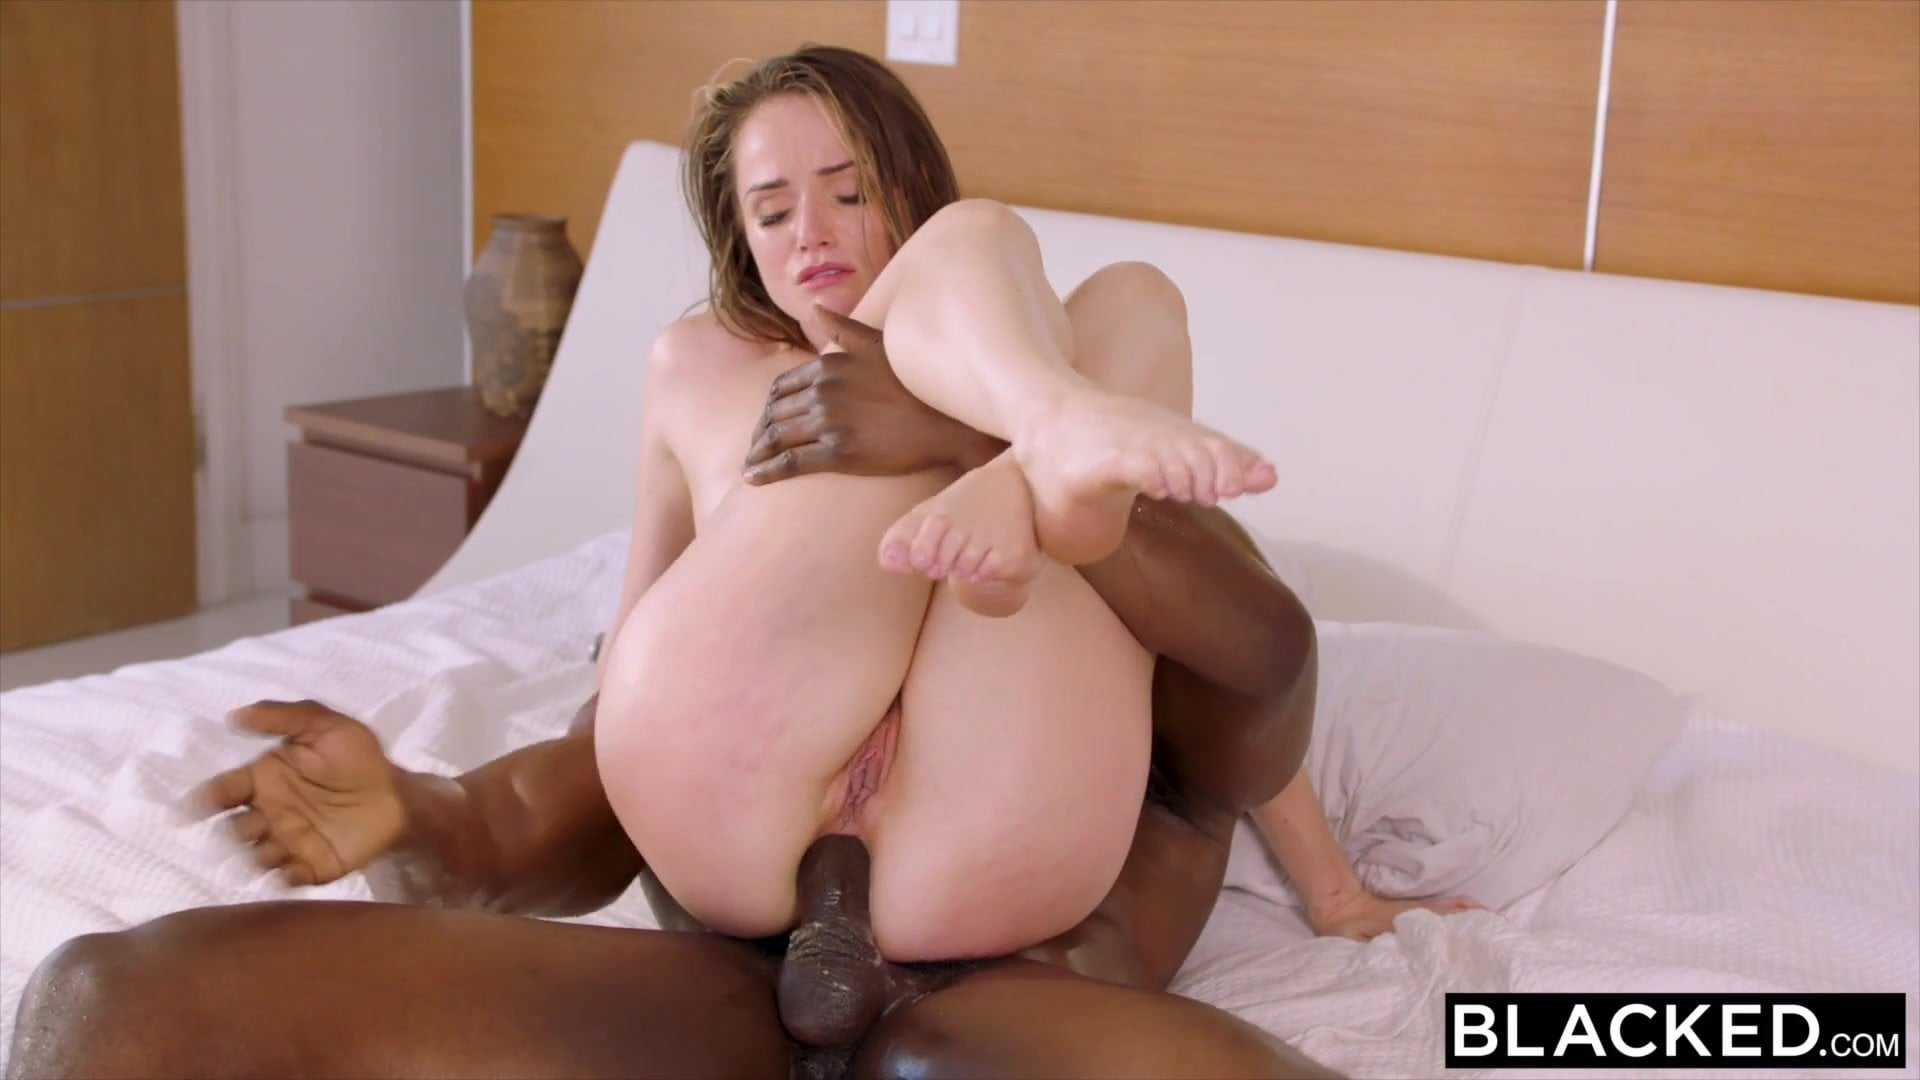 Blacked Tori Black Gets Gaped With Massive Bbc Hd Porn 78-9822